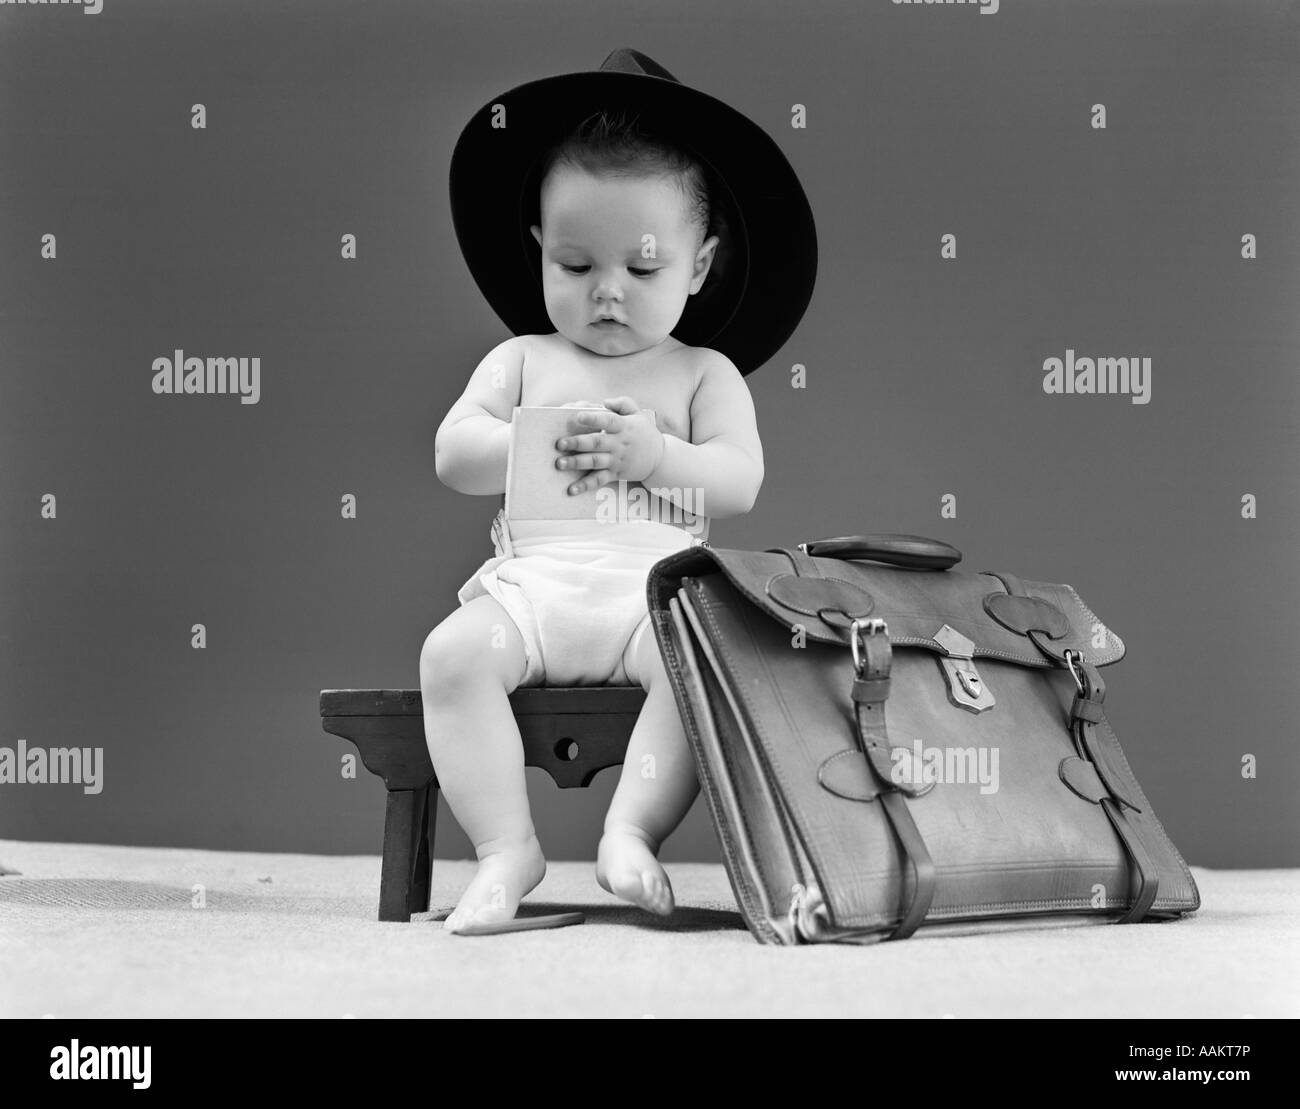 1940s BABY IN FEDORA SEATED ON STOOL WRITING IN NOTEBOOK WITH BRIEFCASE AT SIDE - Stock Image